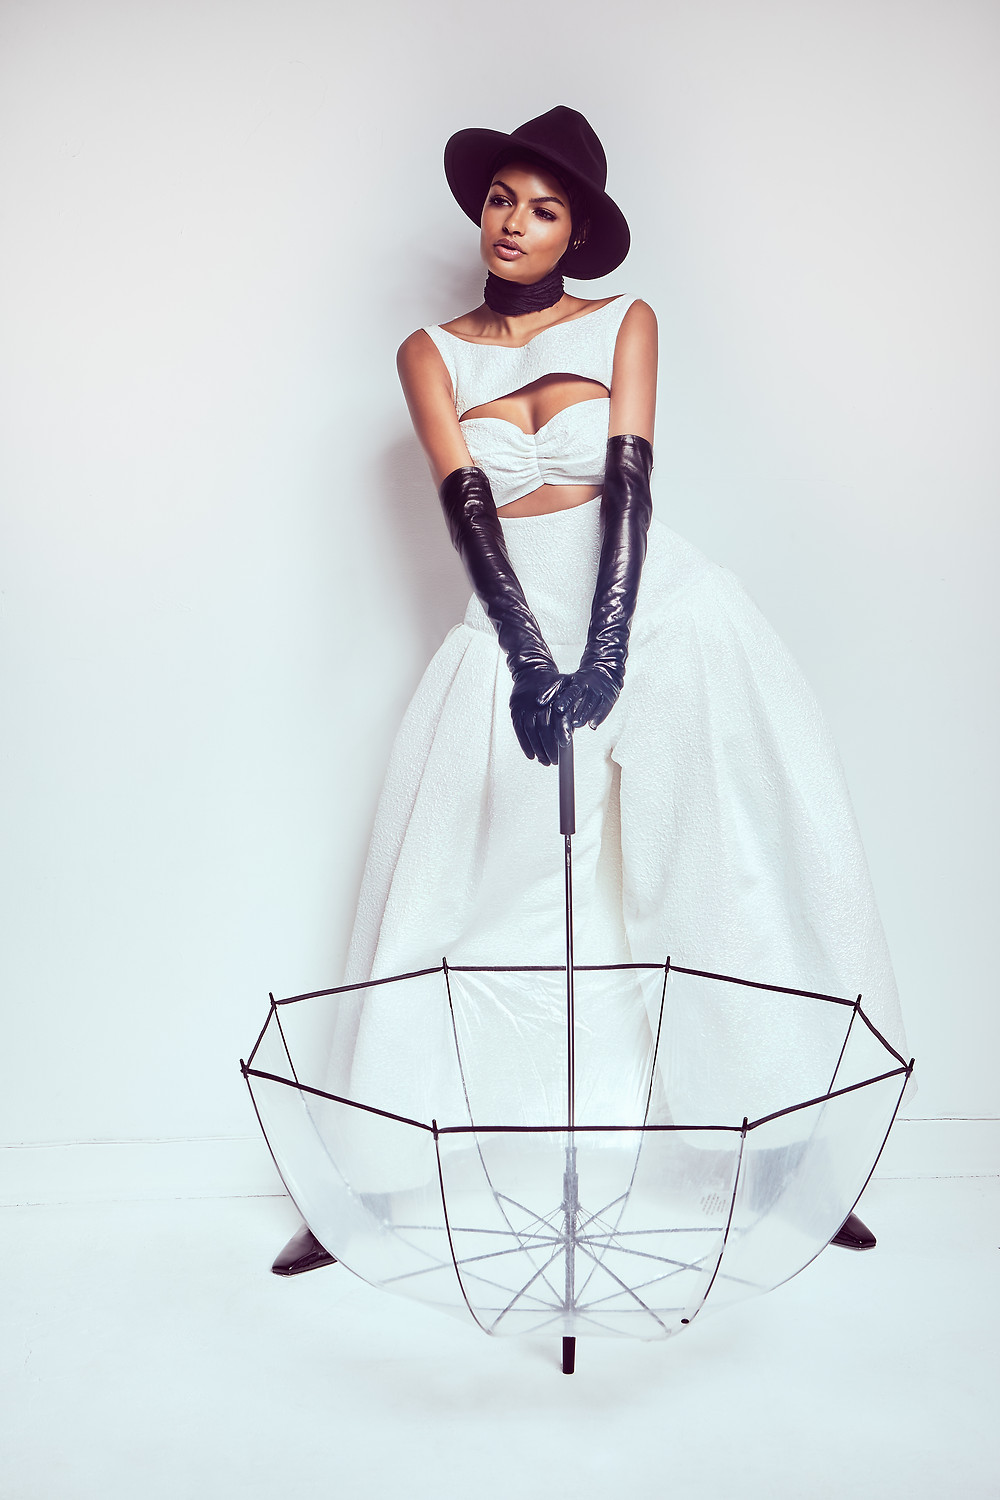 Model Sianna Nelson for Elegant Magazine shot by Patrick Patton, and wearing: Feather top – Rajo Laurel @houseoflaurel Tulle skirt – vintage Cuff Bracelet - Silvana Kegulian @silvanadesigns Boots -ZARA